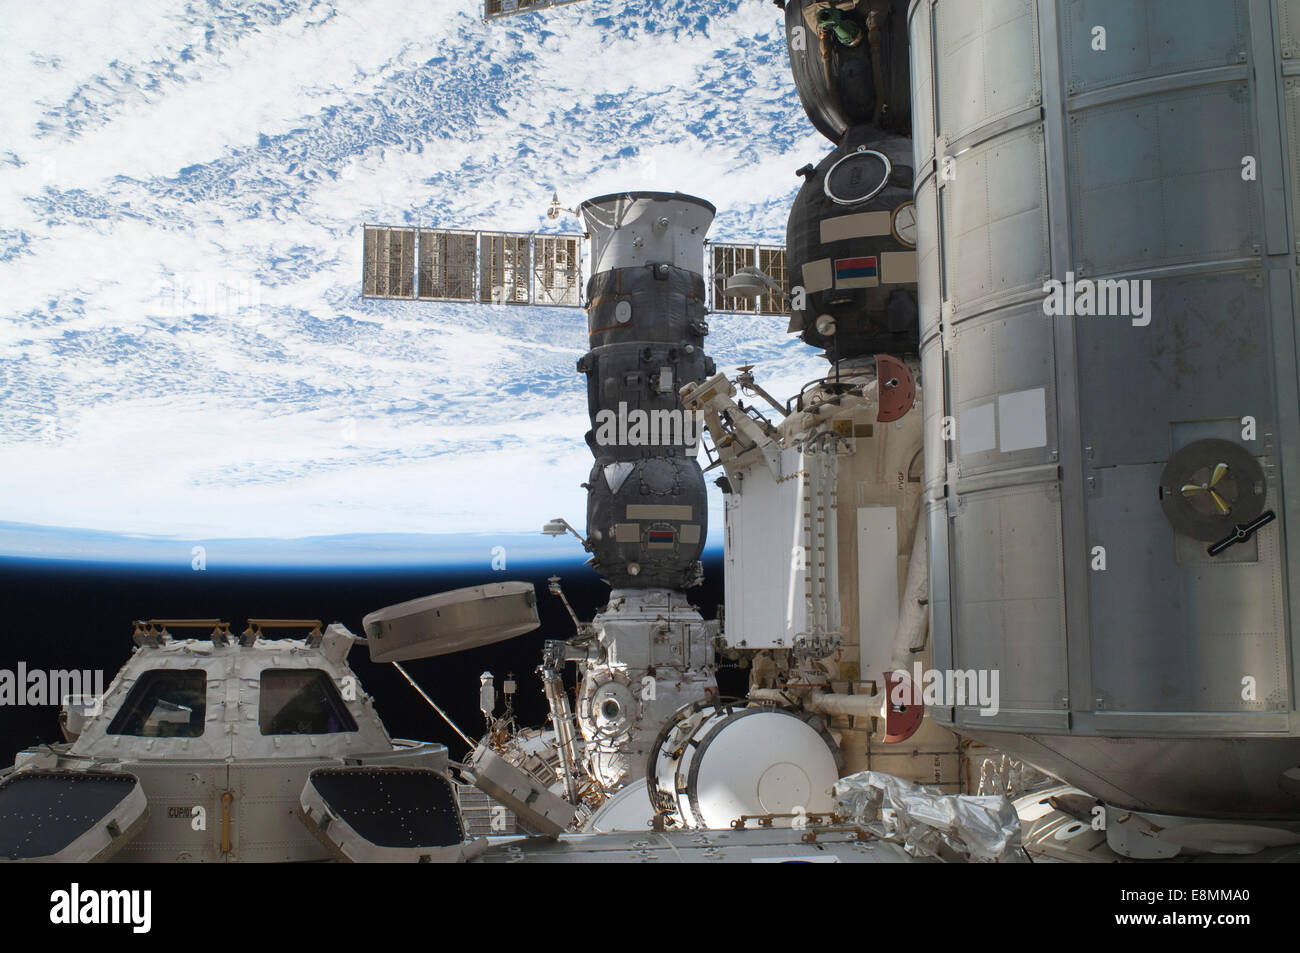 July 12, 2011 - The International Space Station's Cupola, backdropped against black space, a horizon scene and - Stock Image